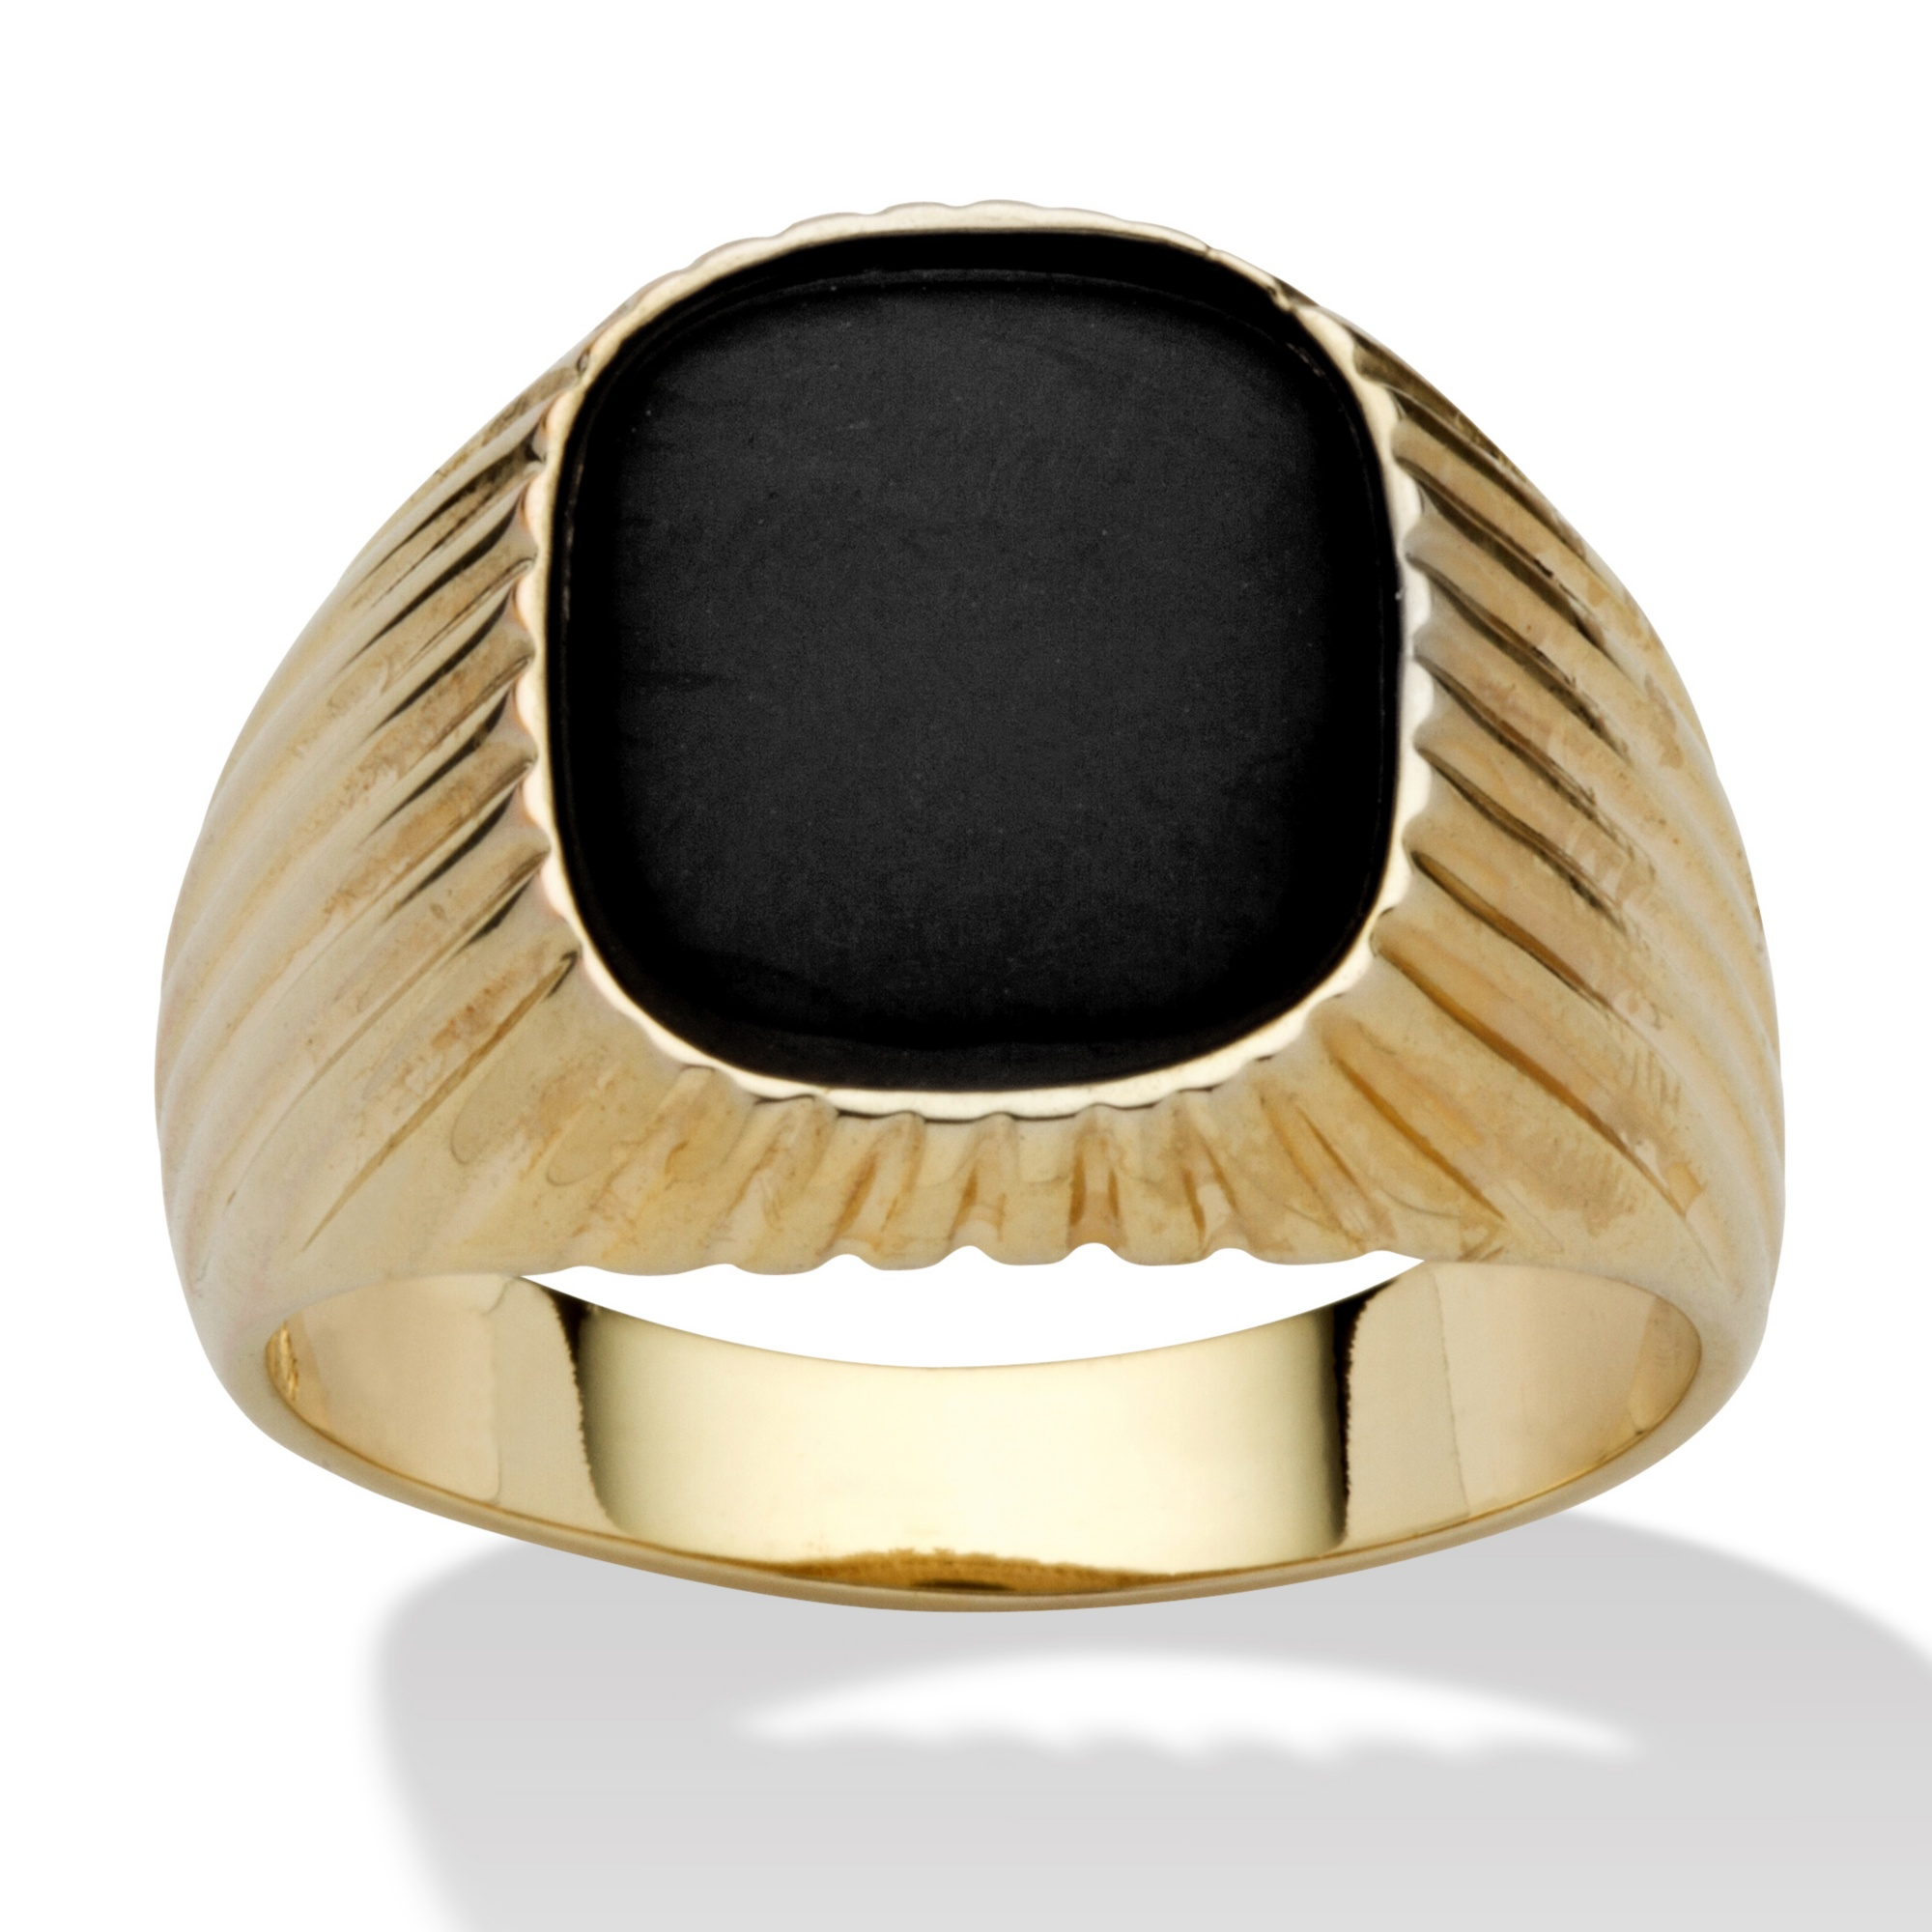 Can anyone identify this gold ring with an odd design onyx wedding band So